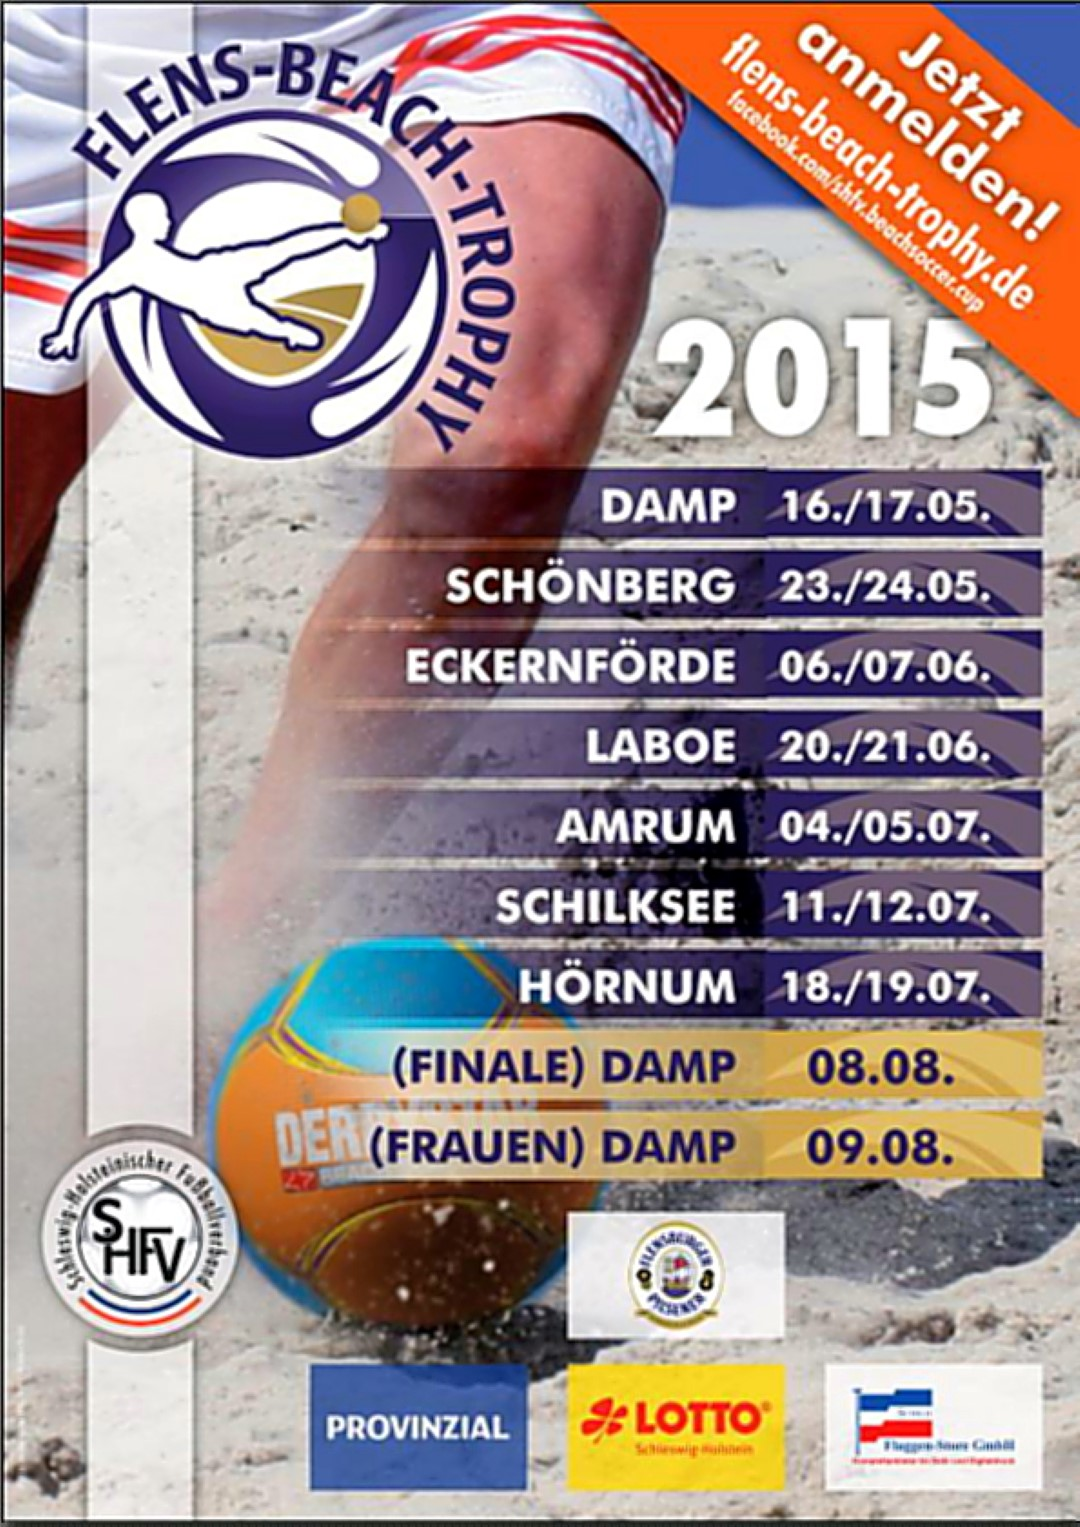 Plakat Flens Beach Trophy